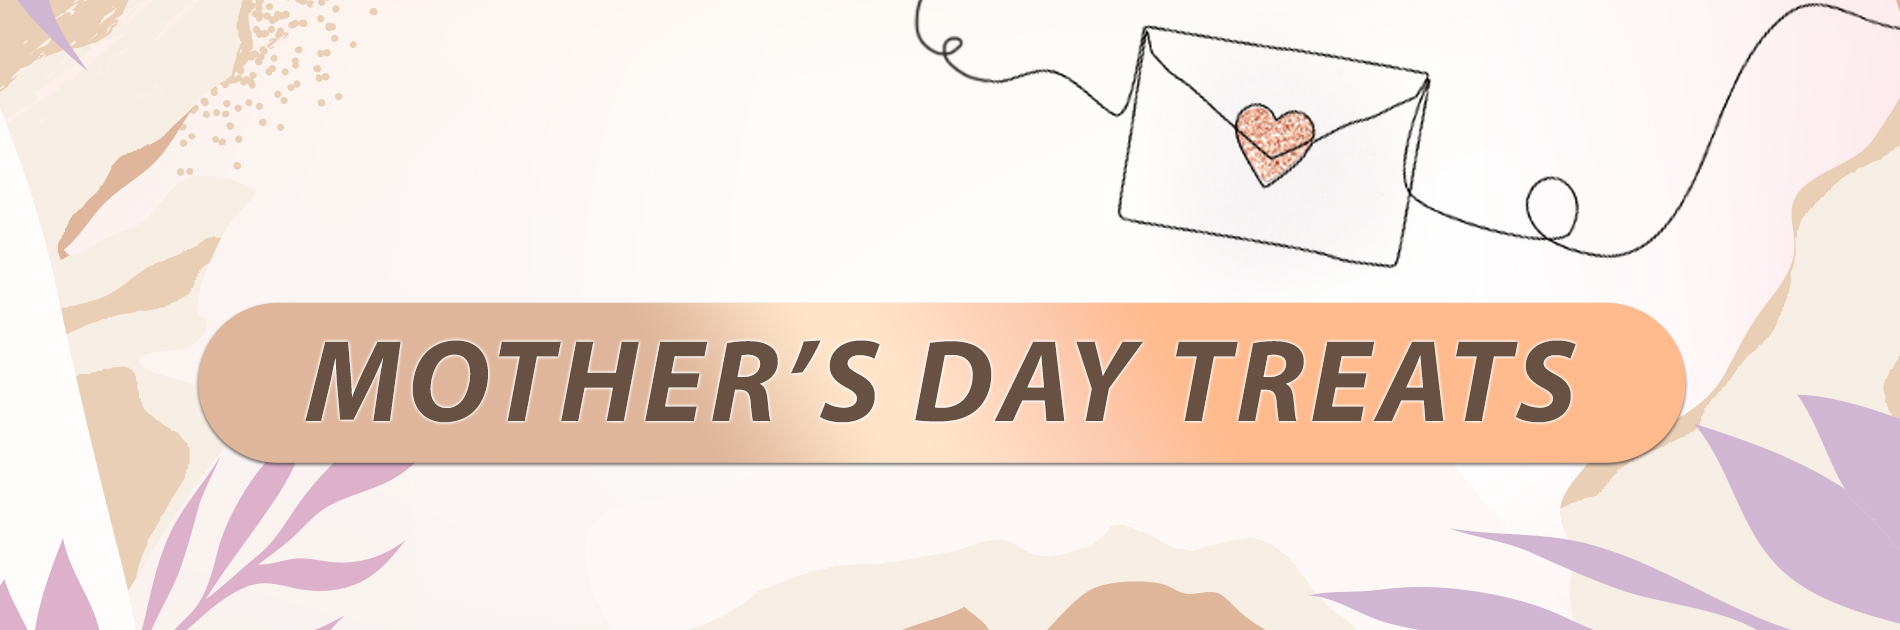 1900x630 mothers day